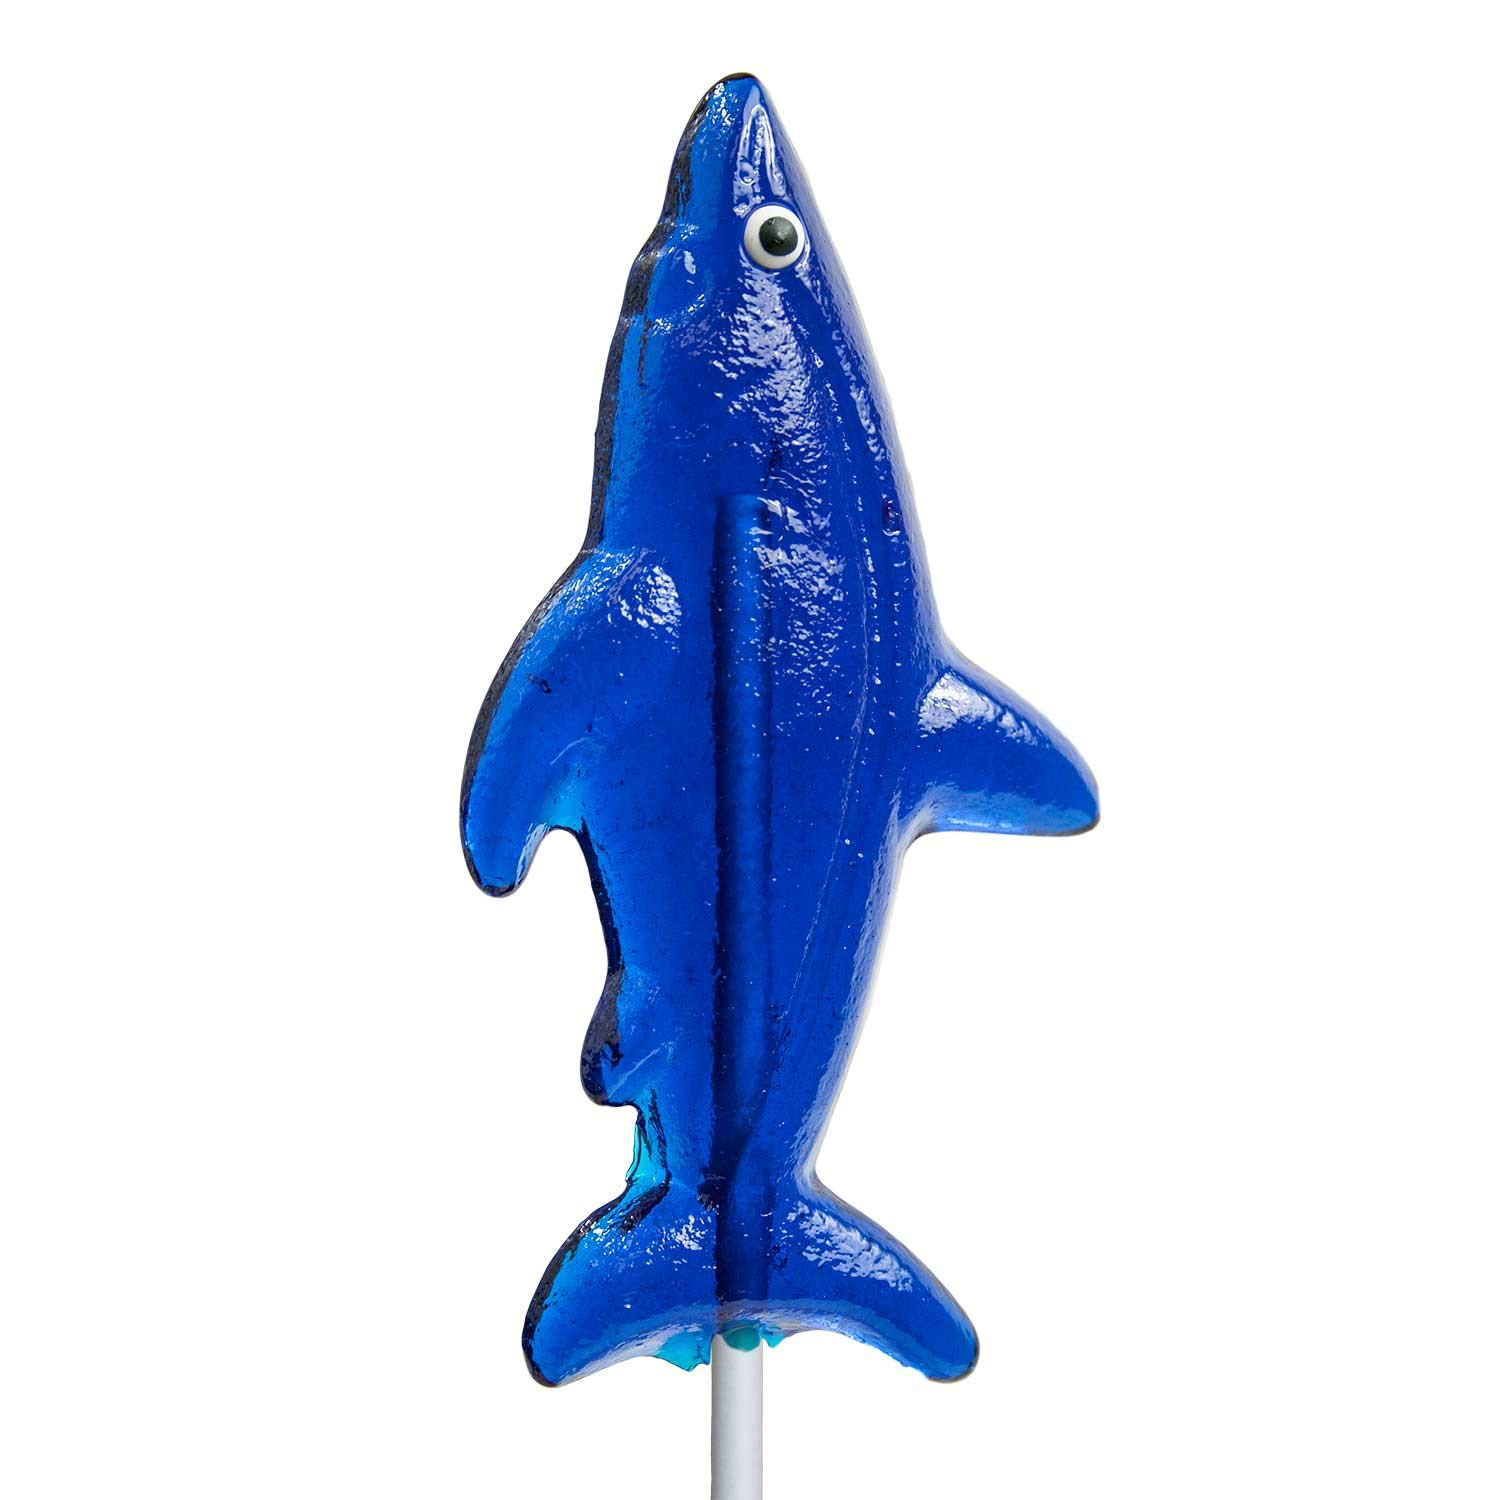 Shark Shaped Hard Candy Lollipop Blue Raspberry Flavored 100% Made In USA (24 Count)